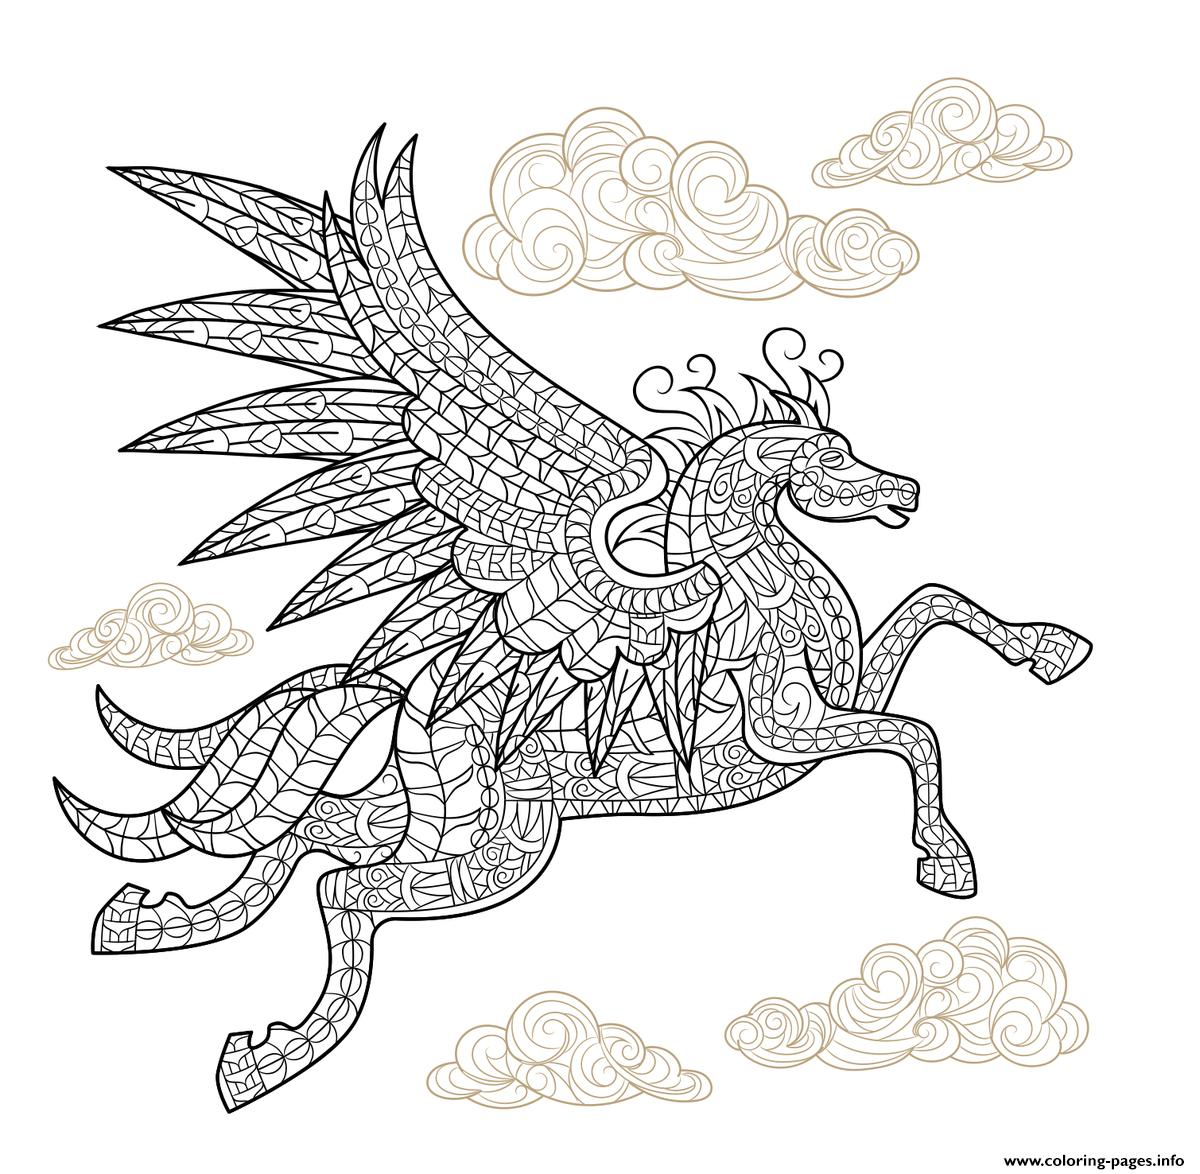 hard horse coloring pages - photo#27